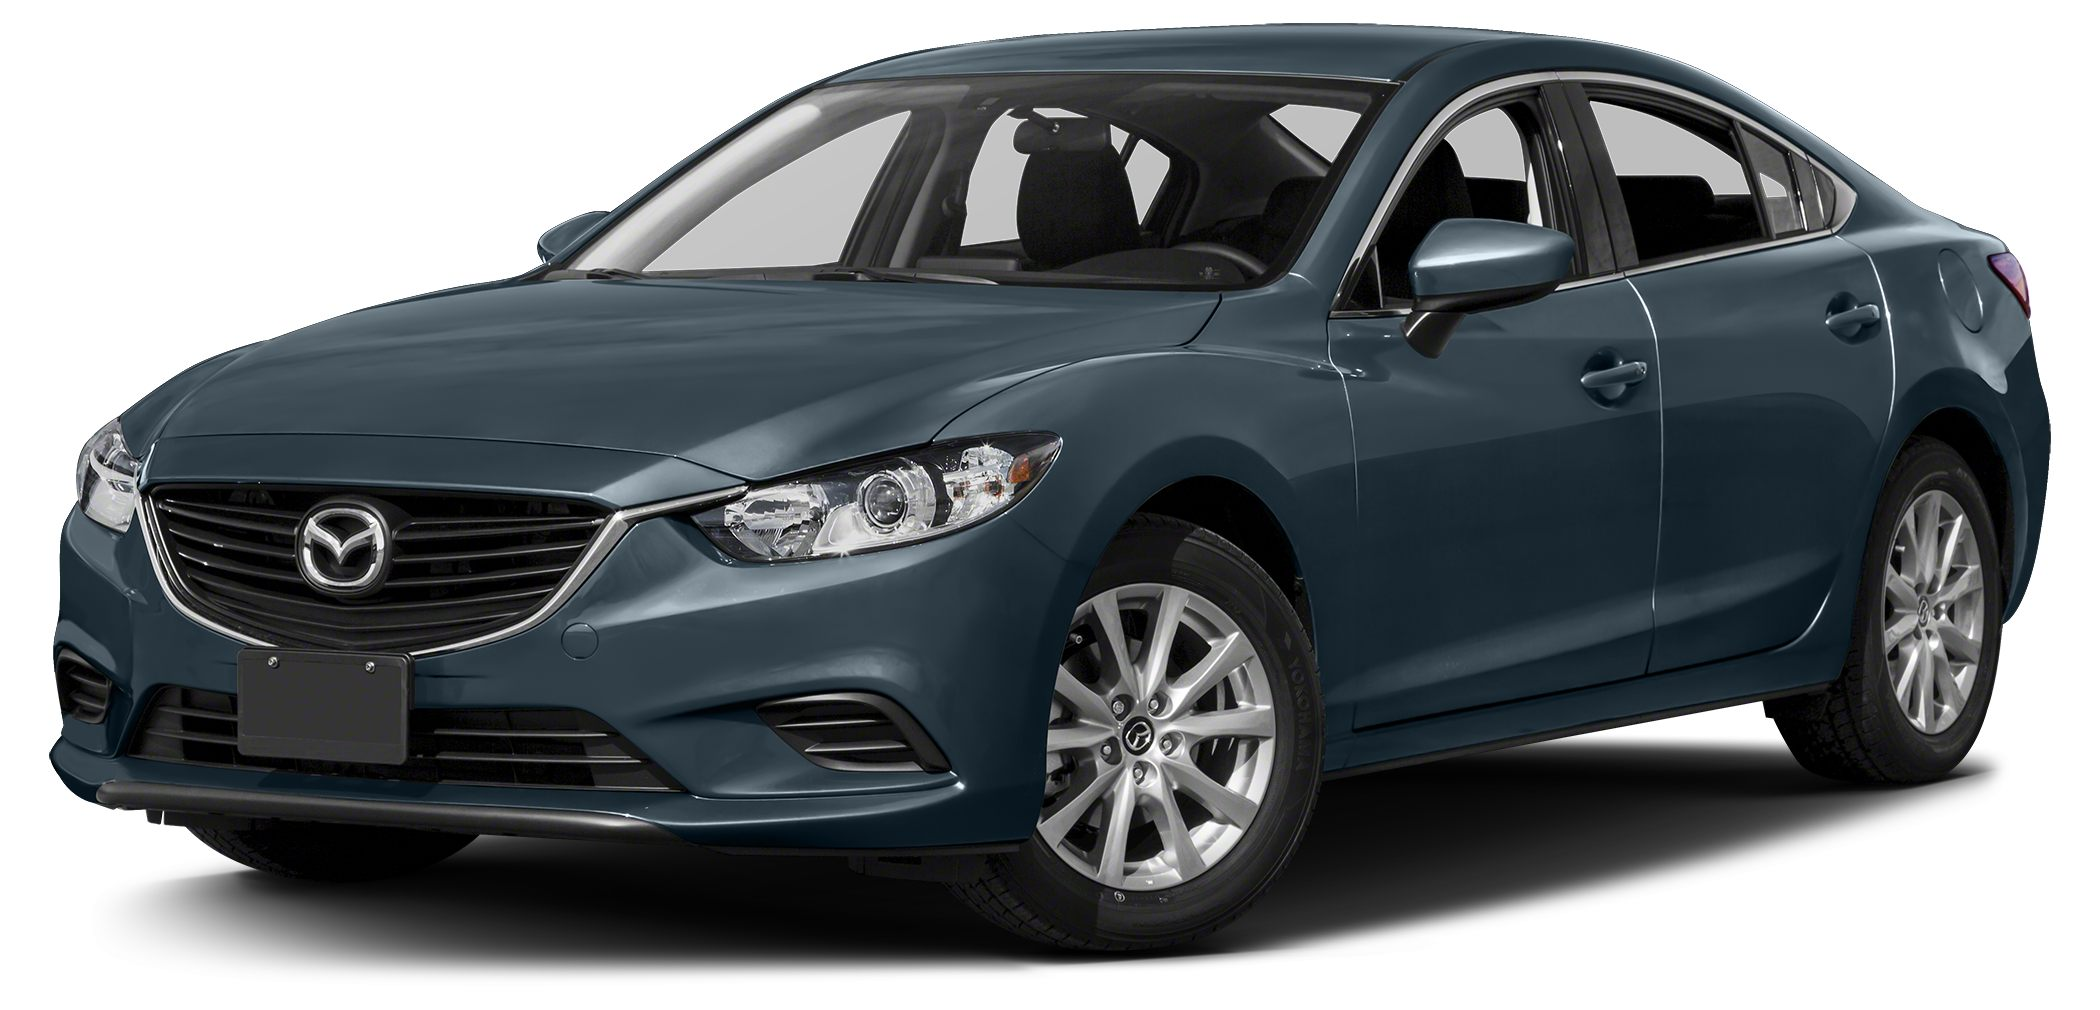 2016 Mazda MAZDA6 i Touring Inquire to get your best price Special 0 financing is available Cur